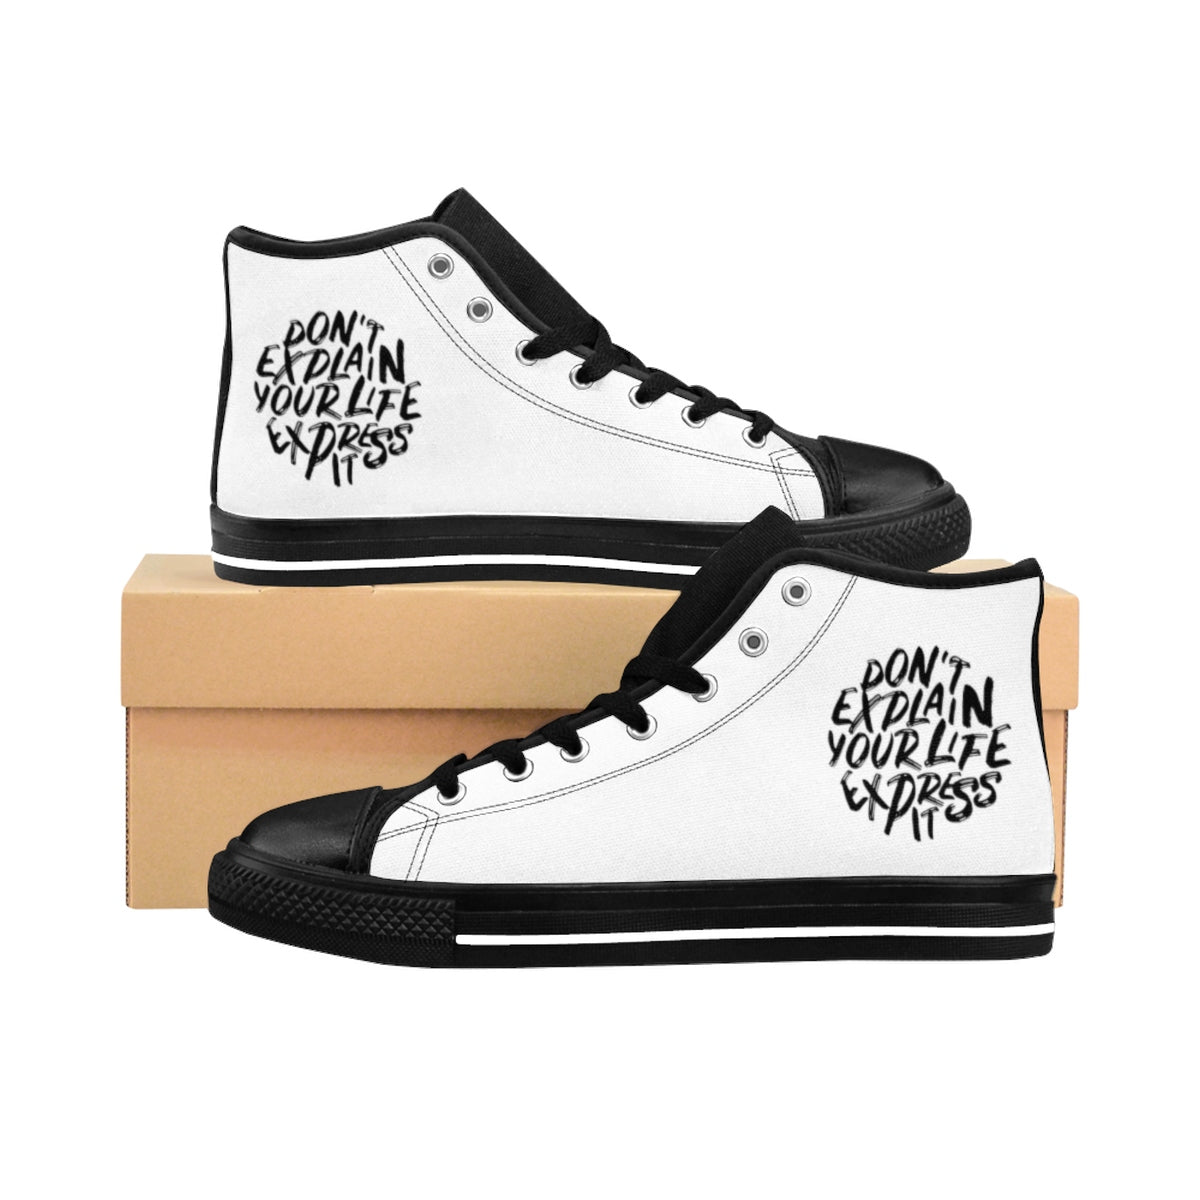 Dont Explain Your Life Express It Women's High-top Sneakers